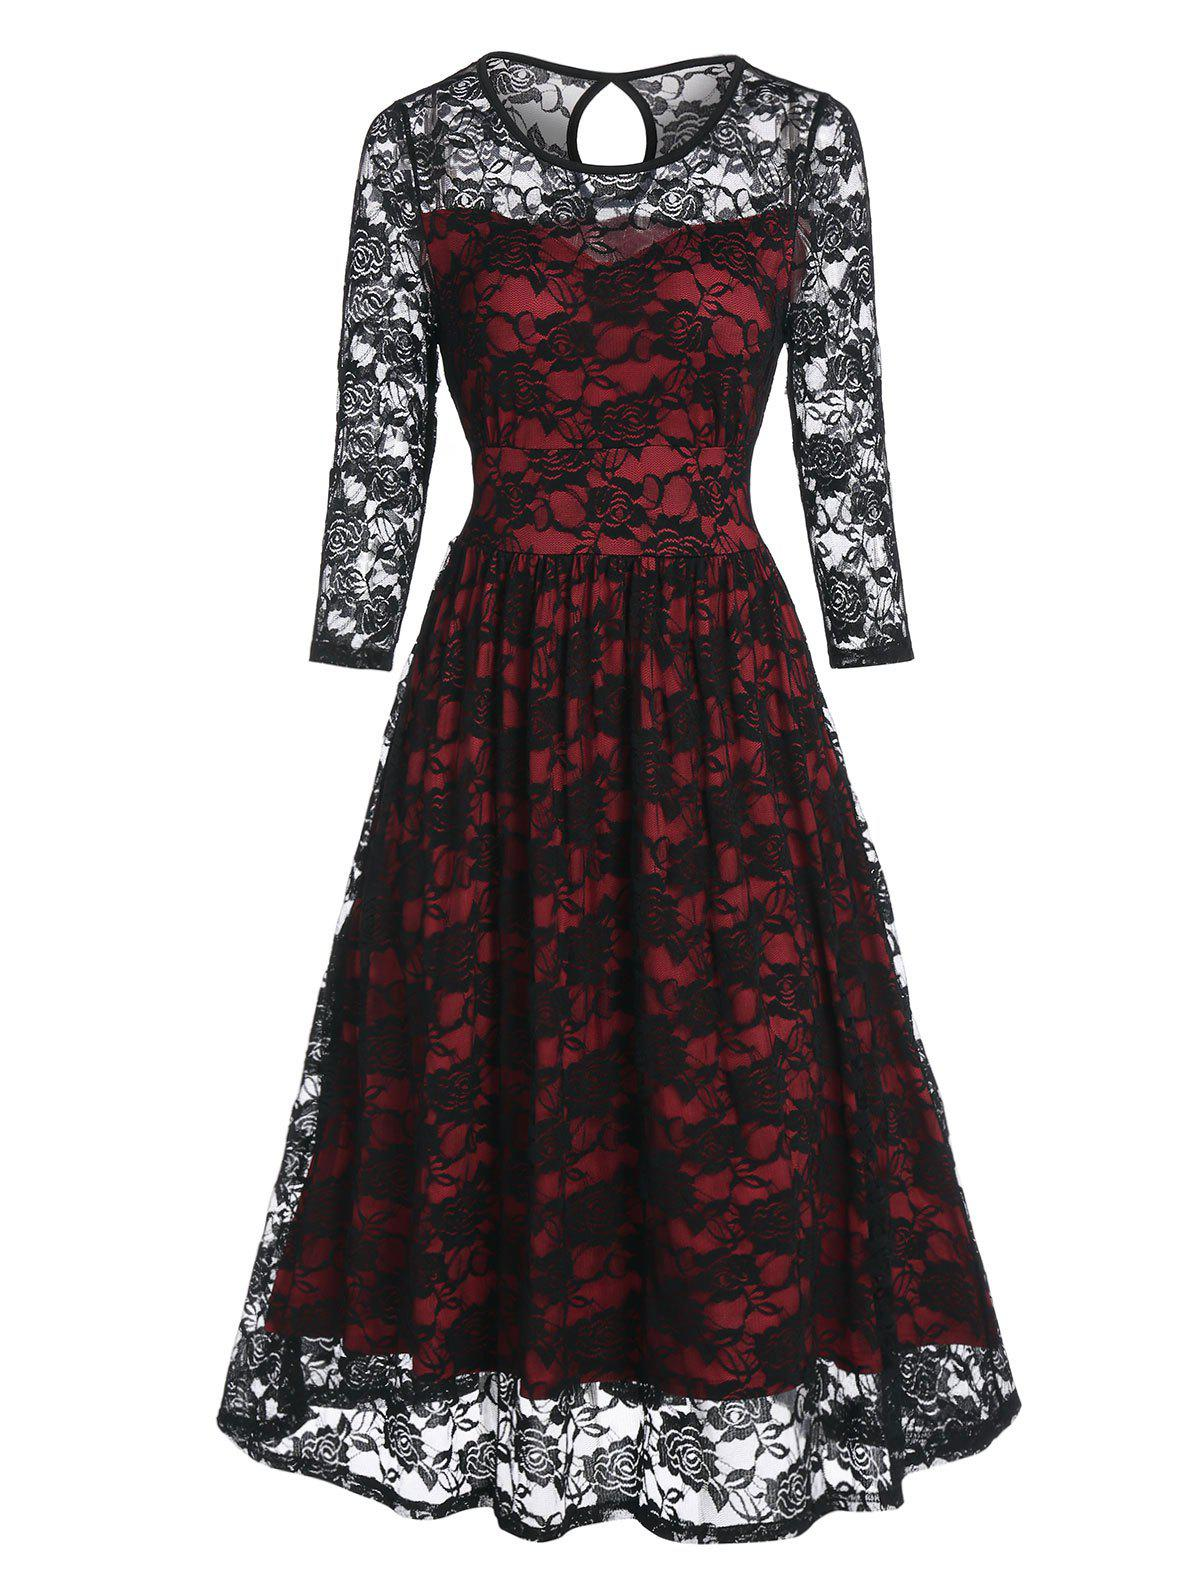 Shop Vintage Flower Pattern Lace Prom Dress